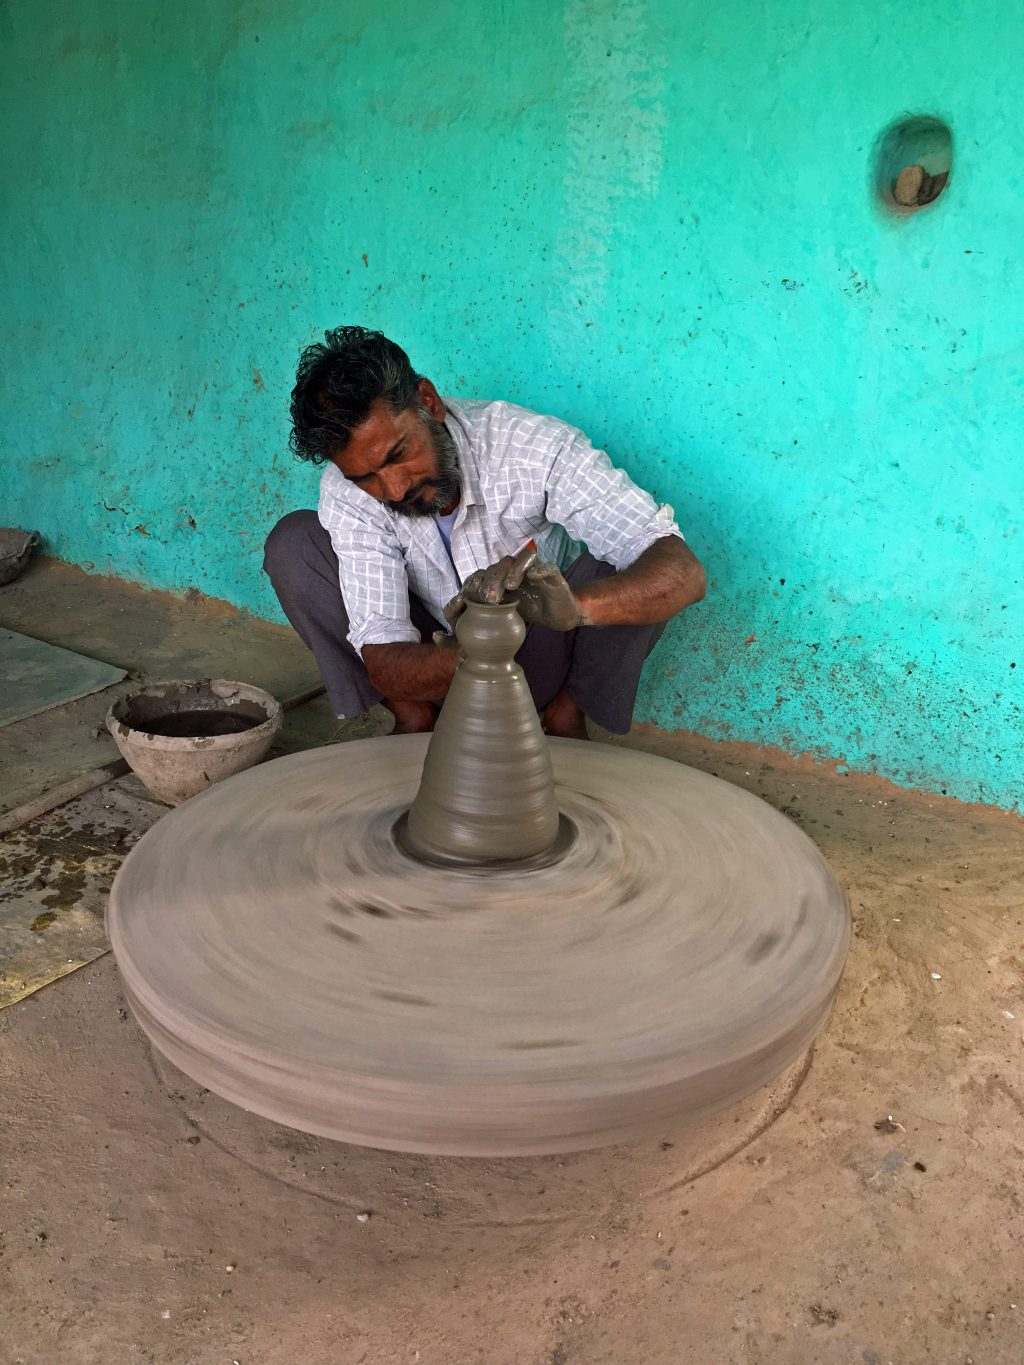 villager-sculpting-clay-on-wheel